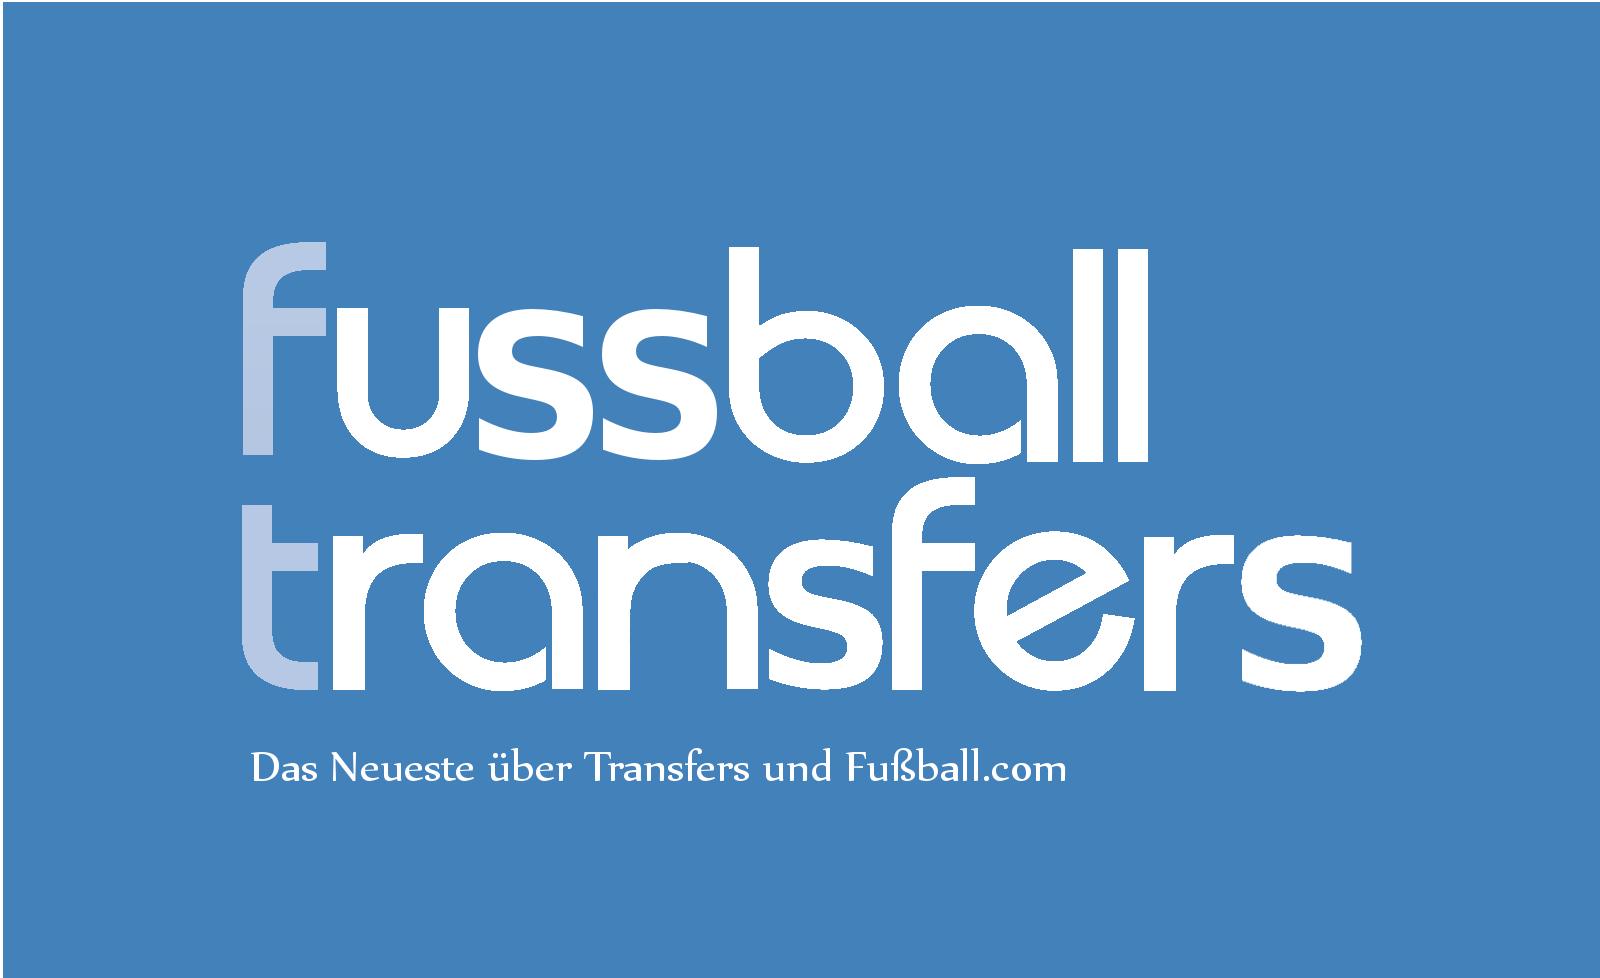 fussball transfer news